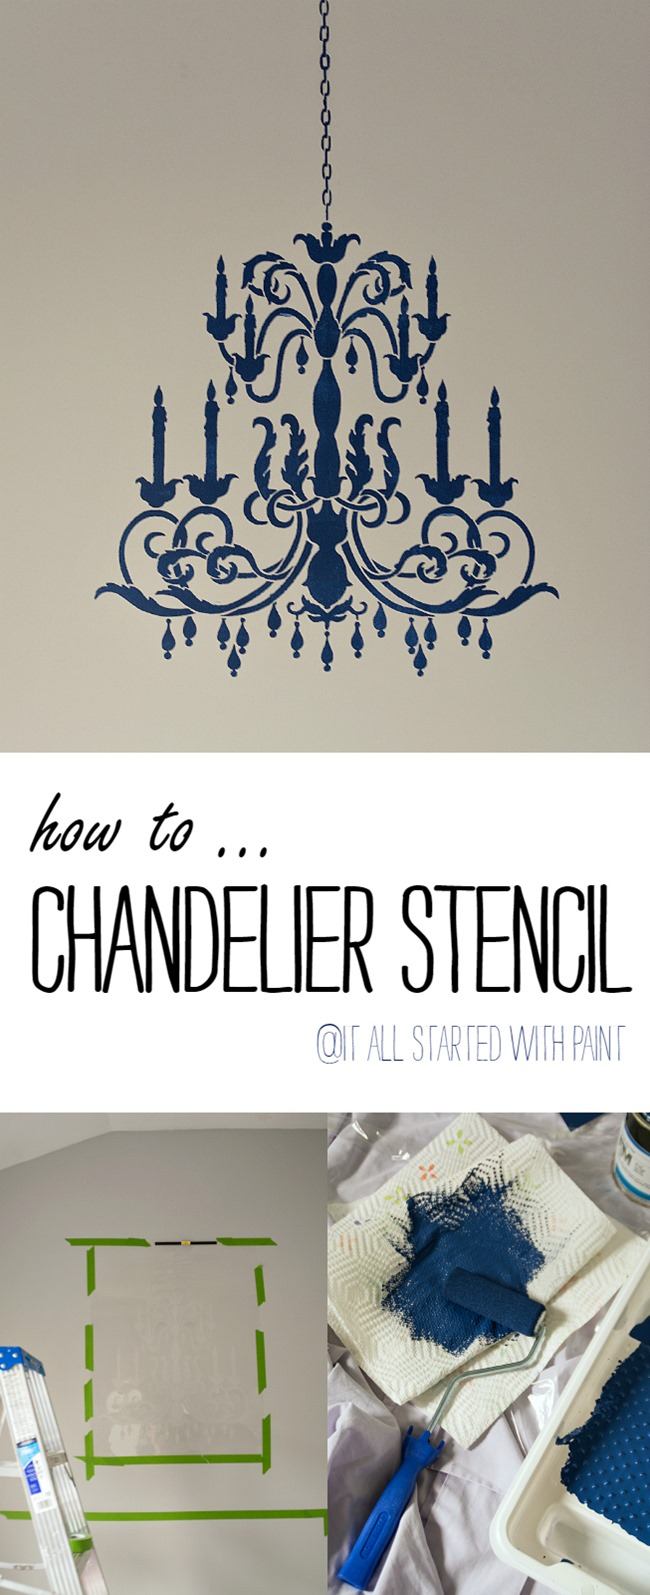 chandelier-stencil-tutorial